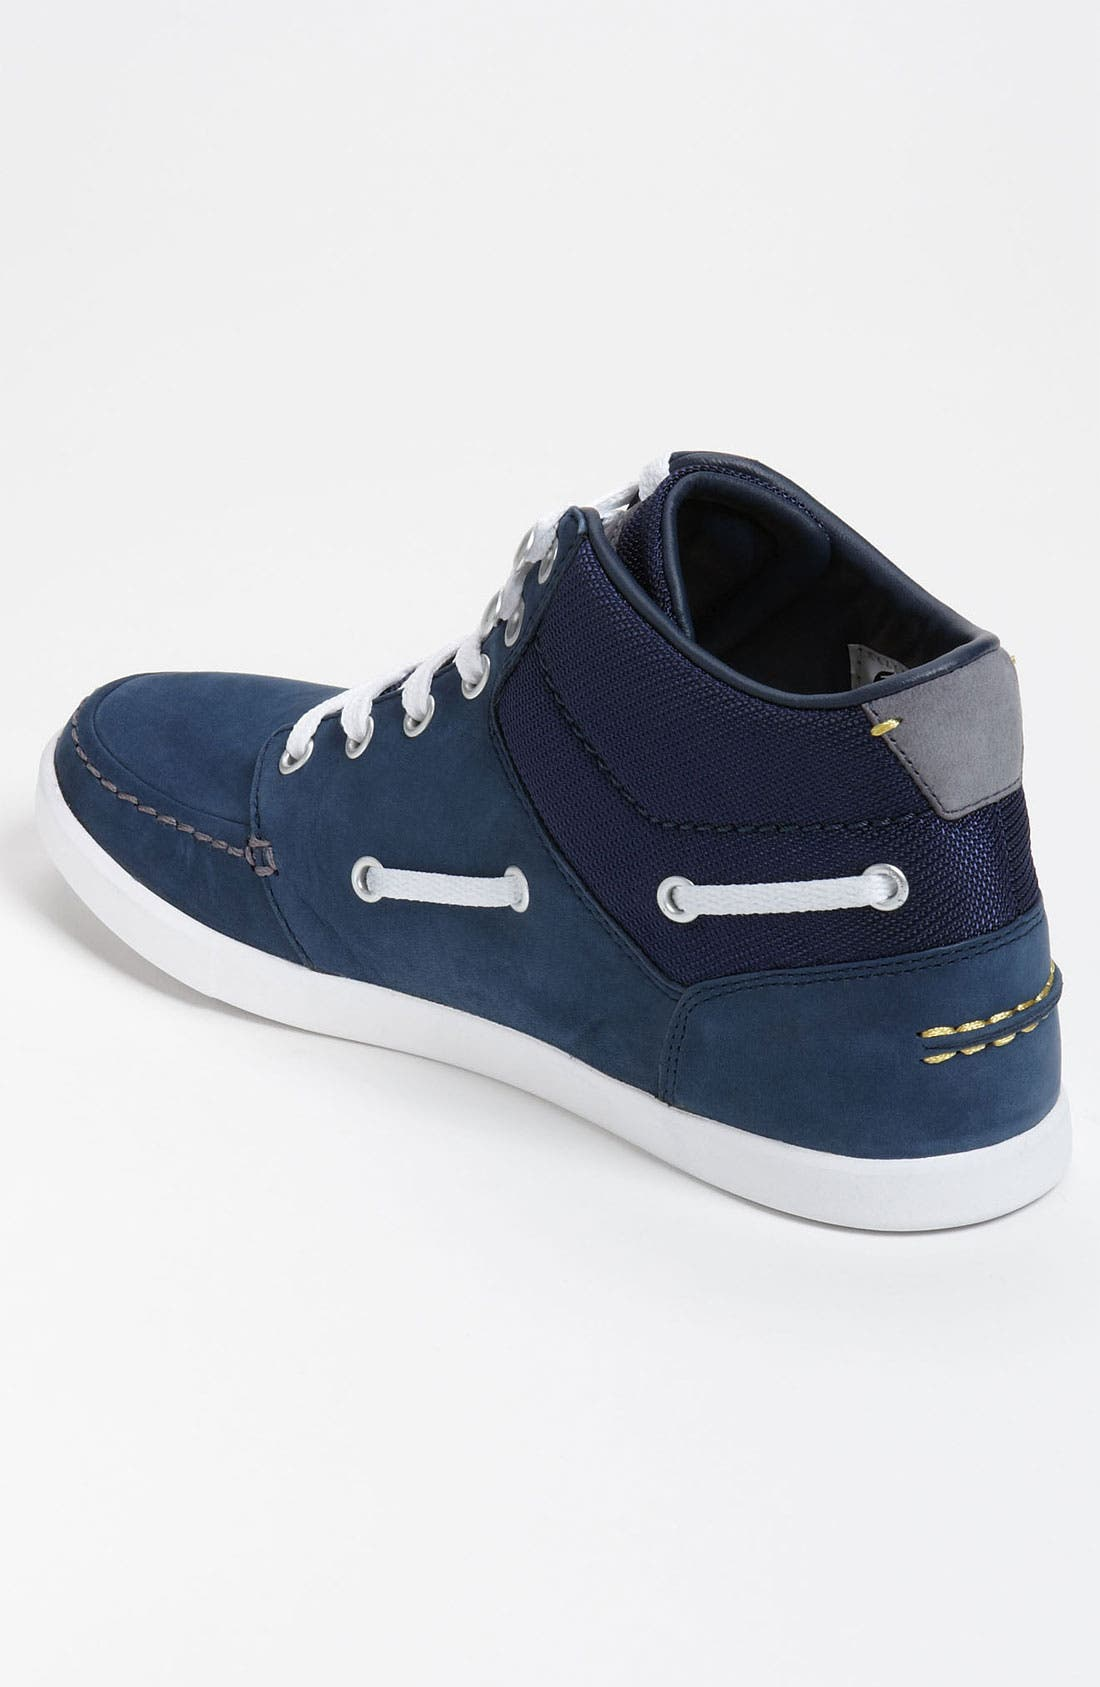 Alternate Image 2  - Lacoste 'Crosier Sail Mid' Sneaker